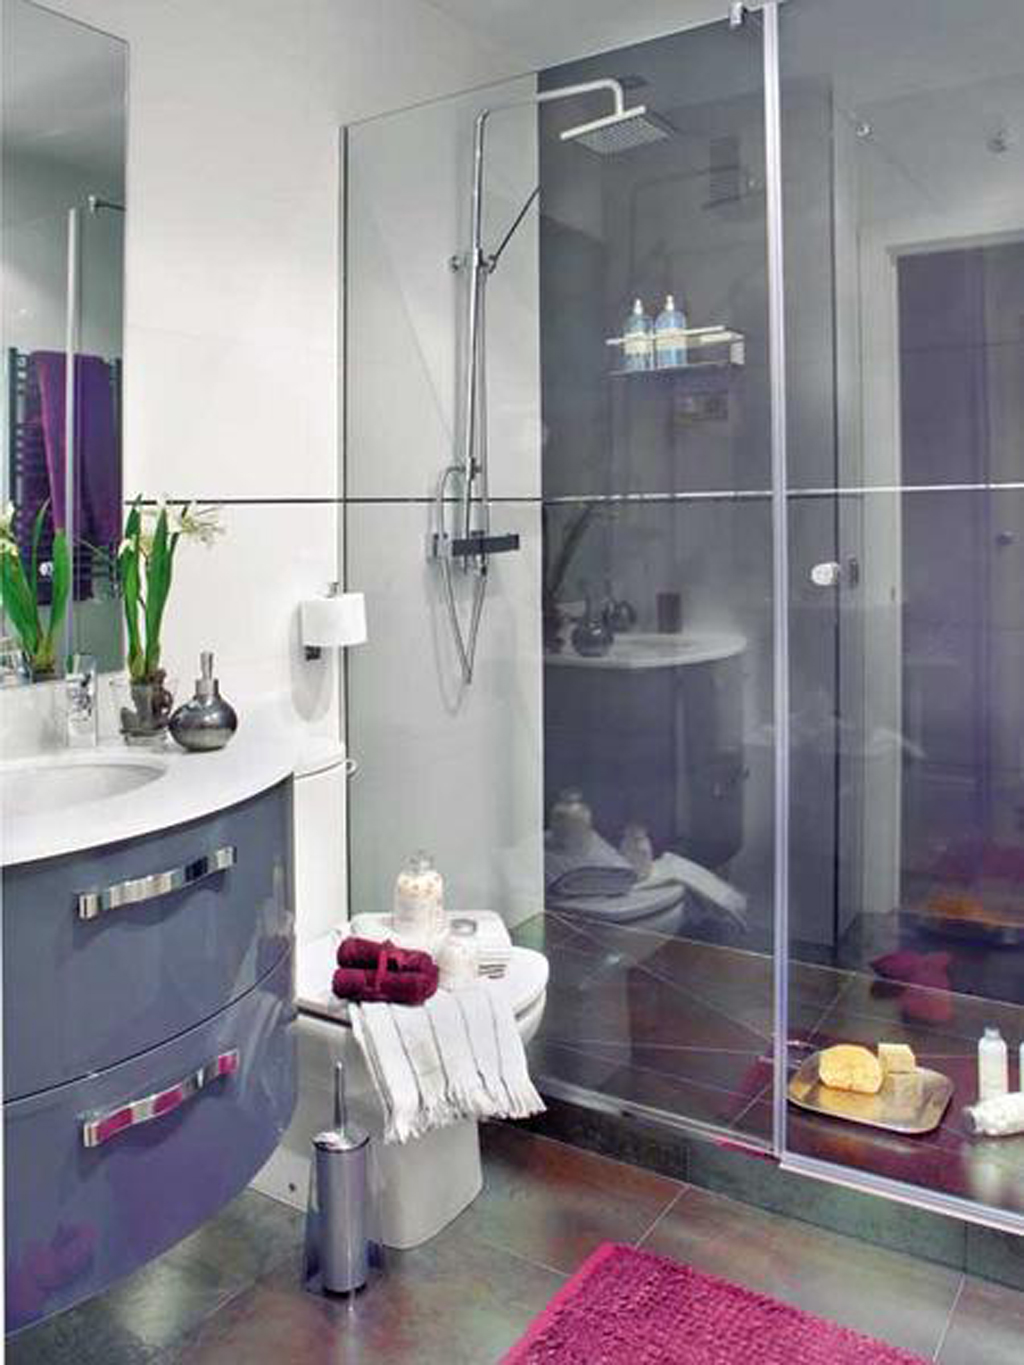 Small bathroom ideas pictures on Small Restroom Ideas  id=77578